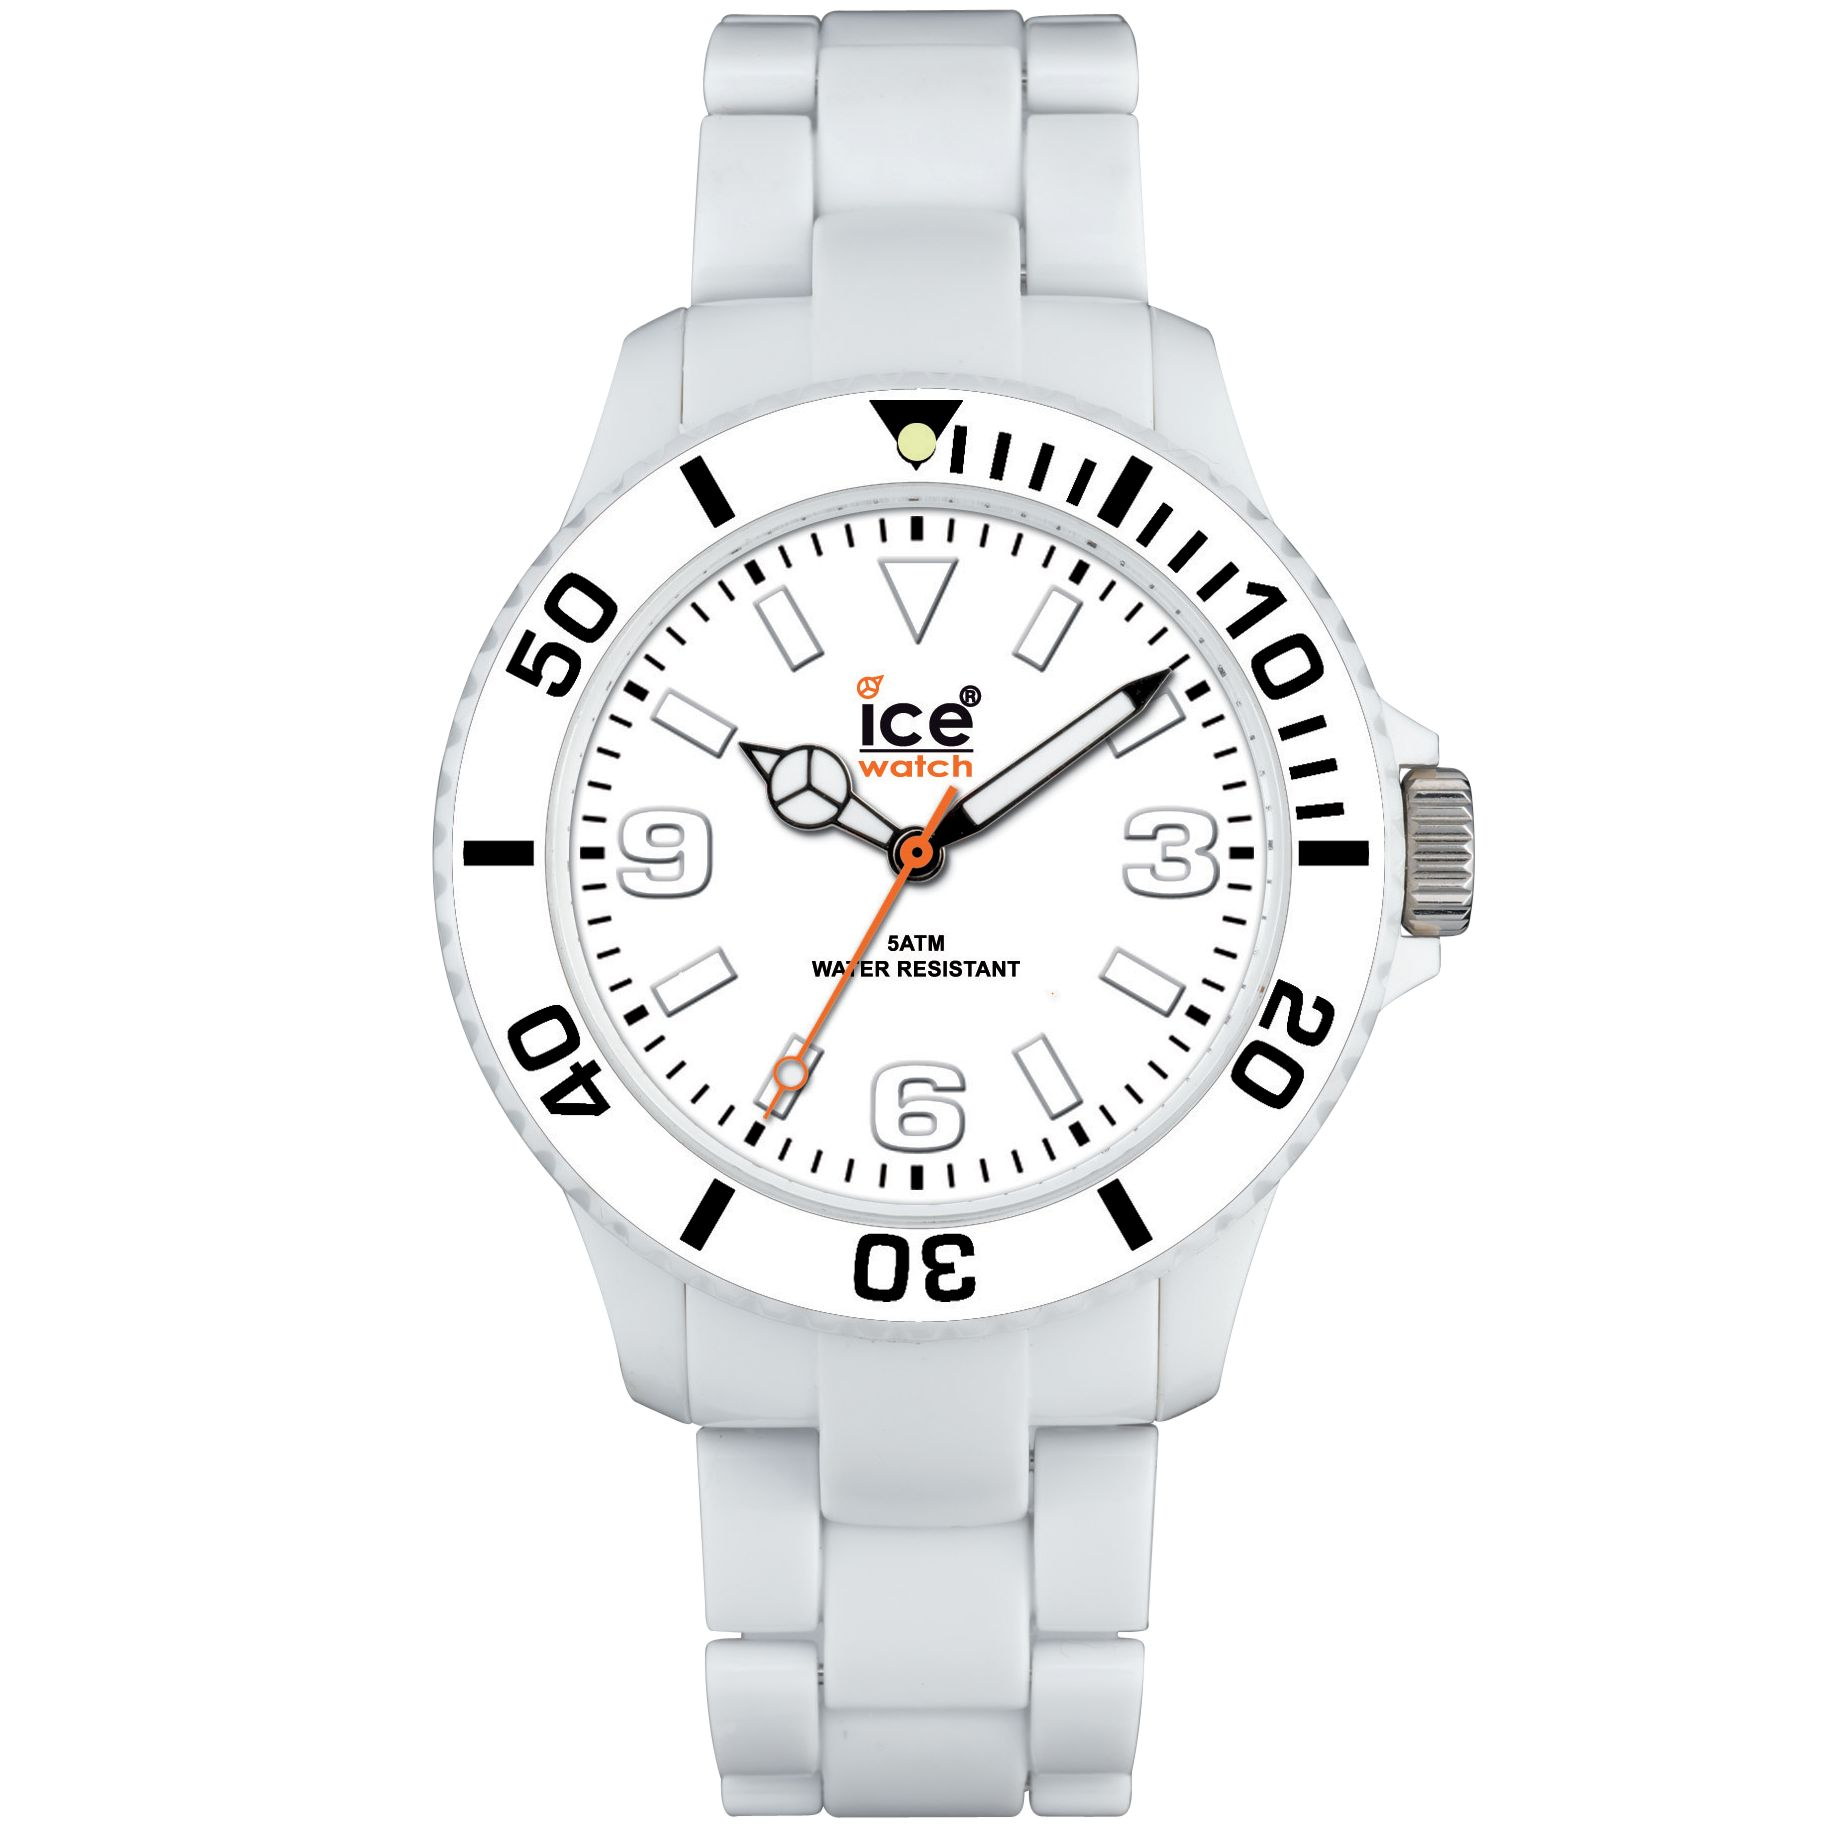 Ice CL-WE-U-P Classic Unisex Strap Watch, White